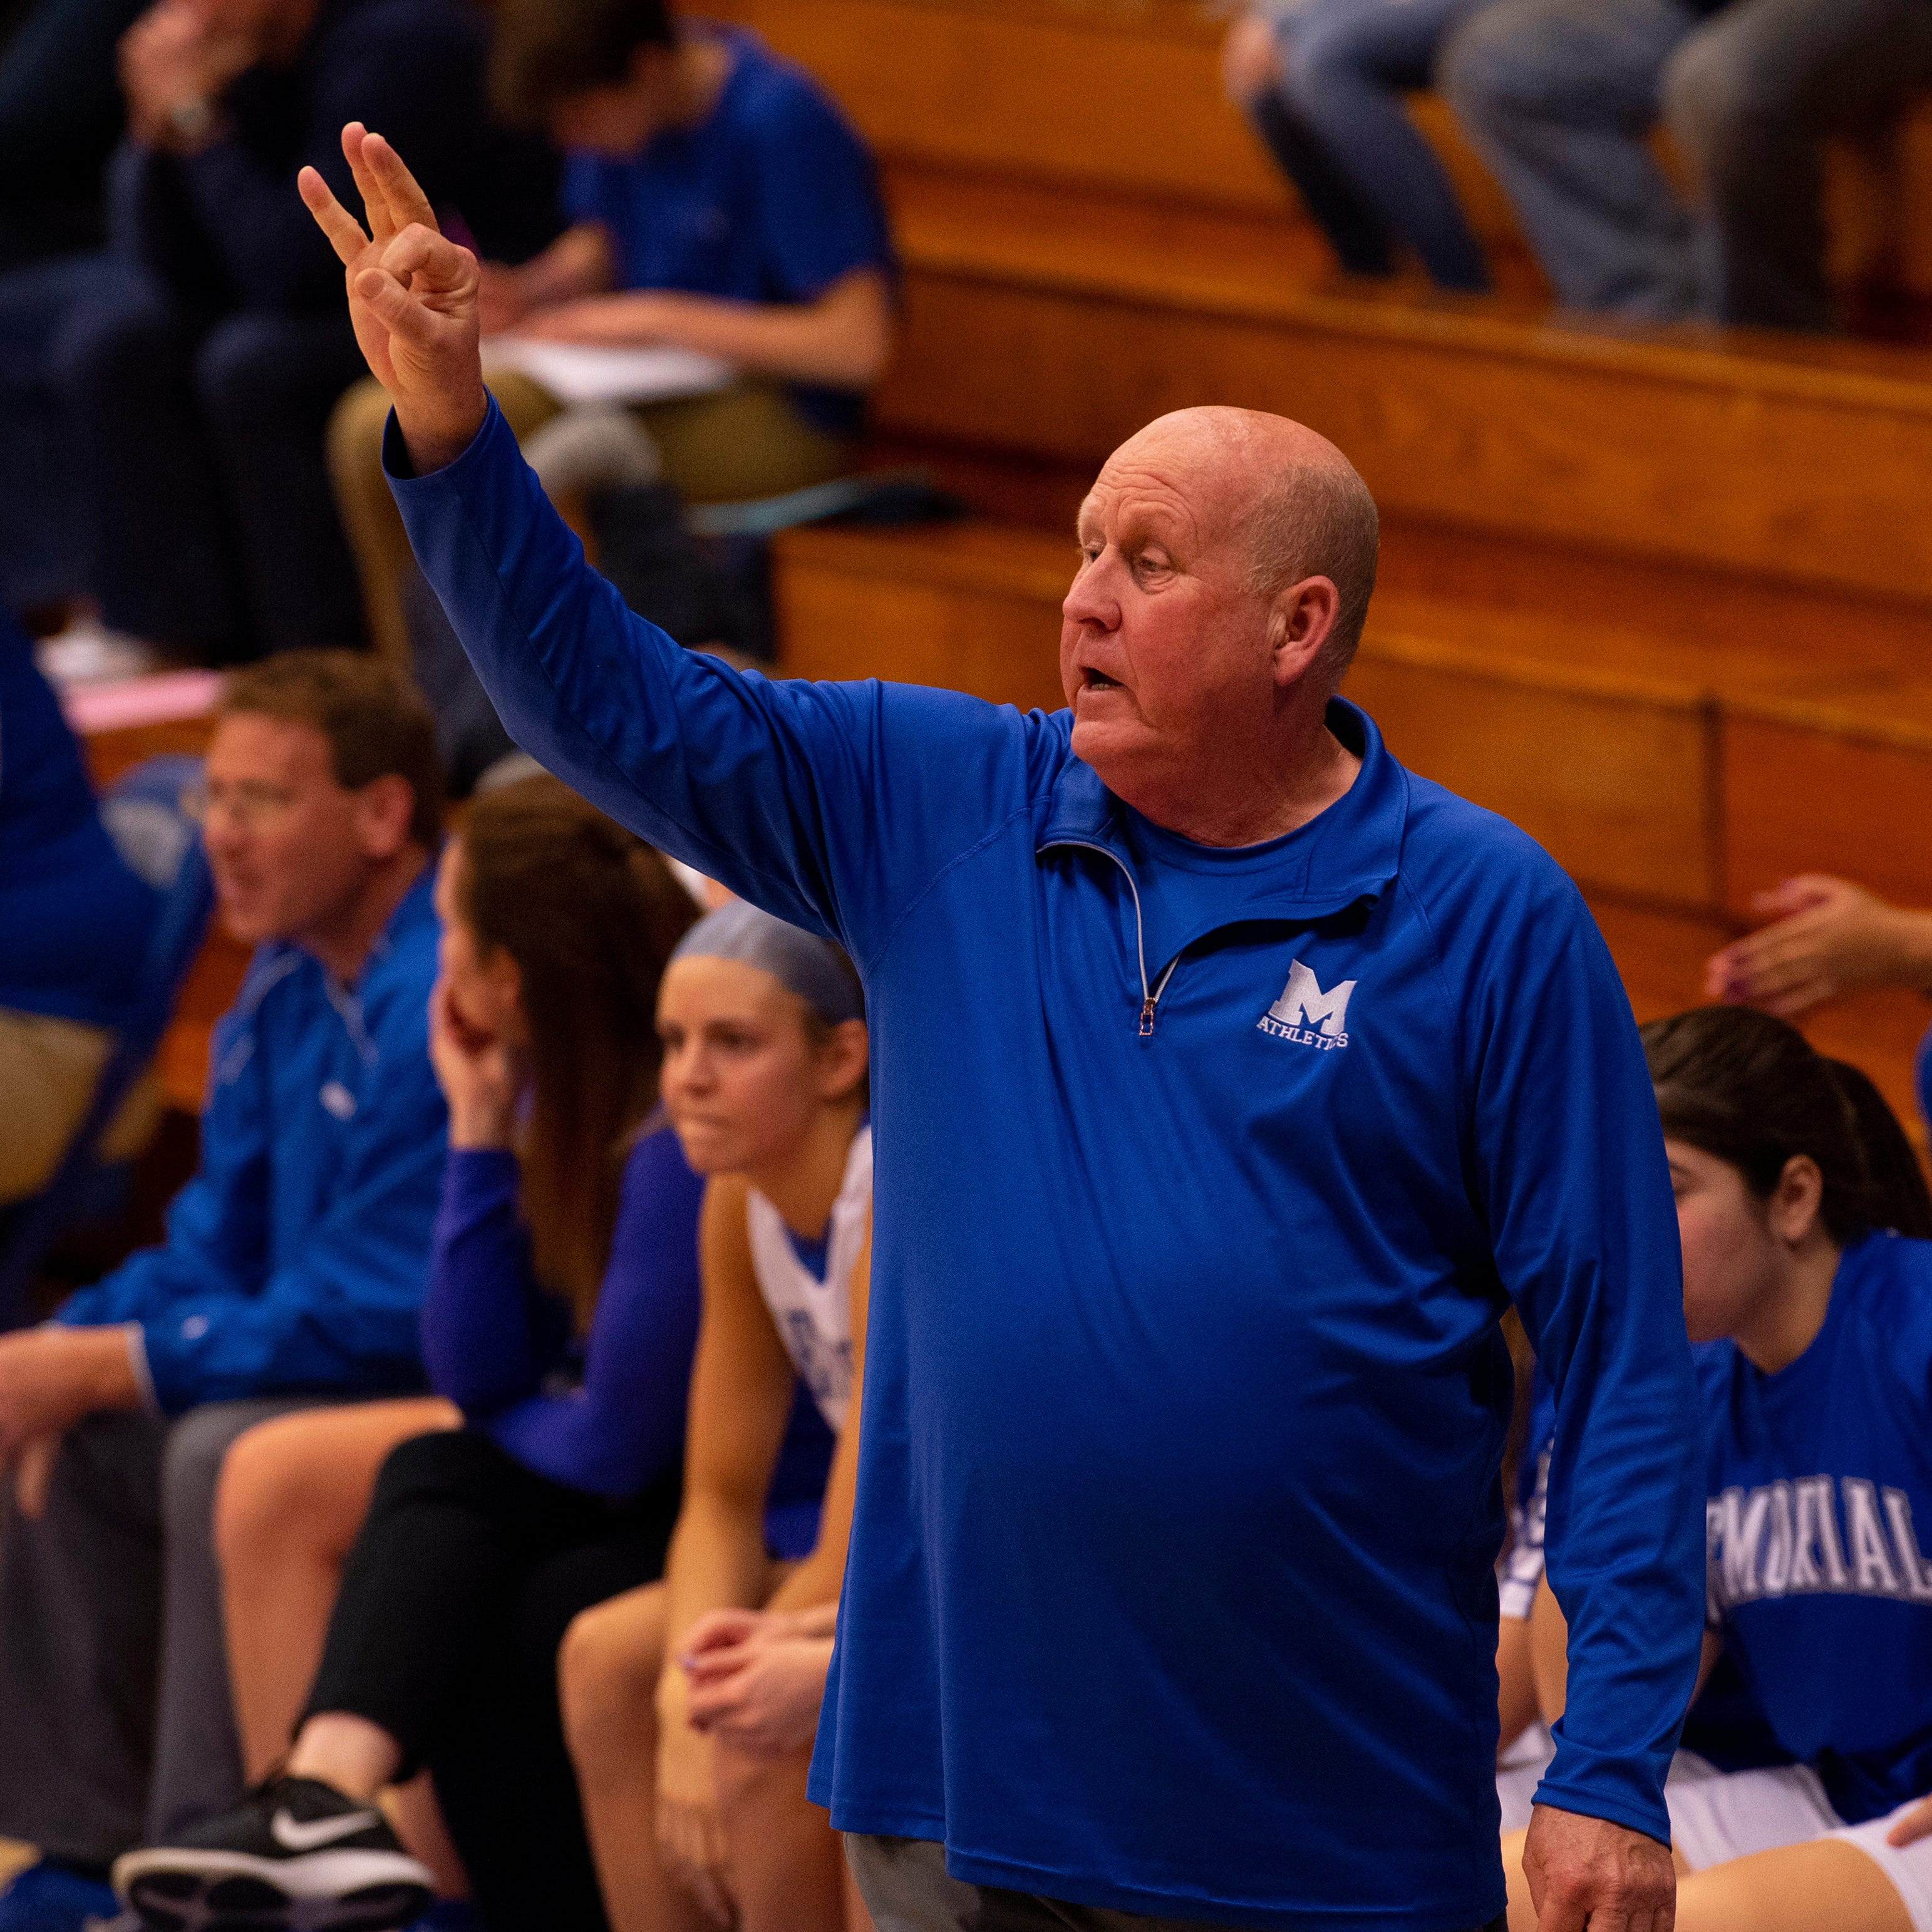 Bruce Dockery, who led Memorial girls' basketball teams to 500 wins, is retiring